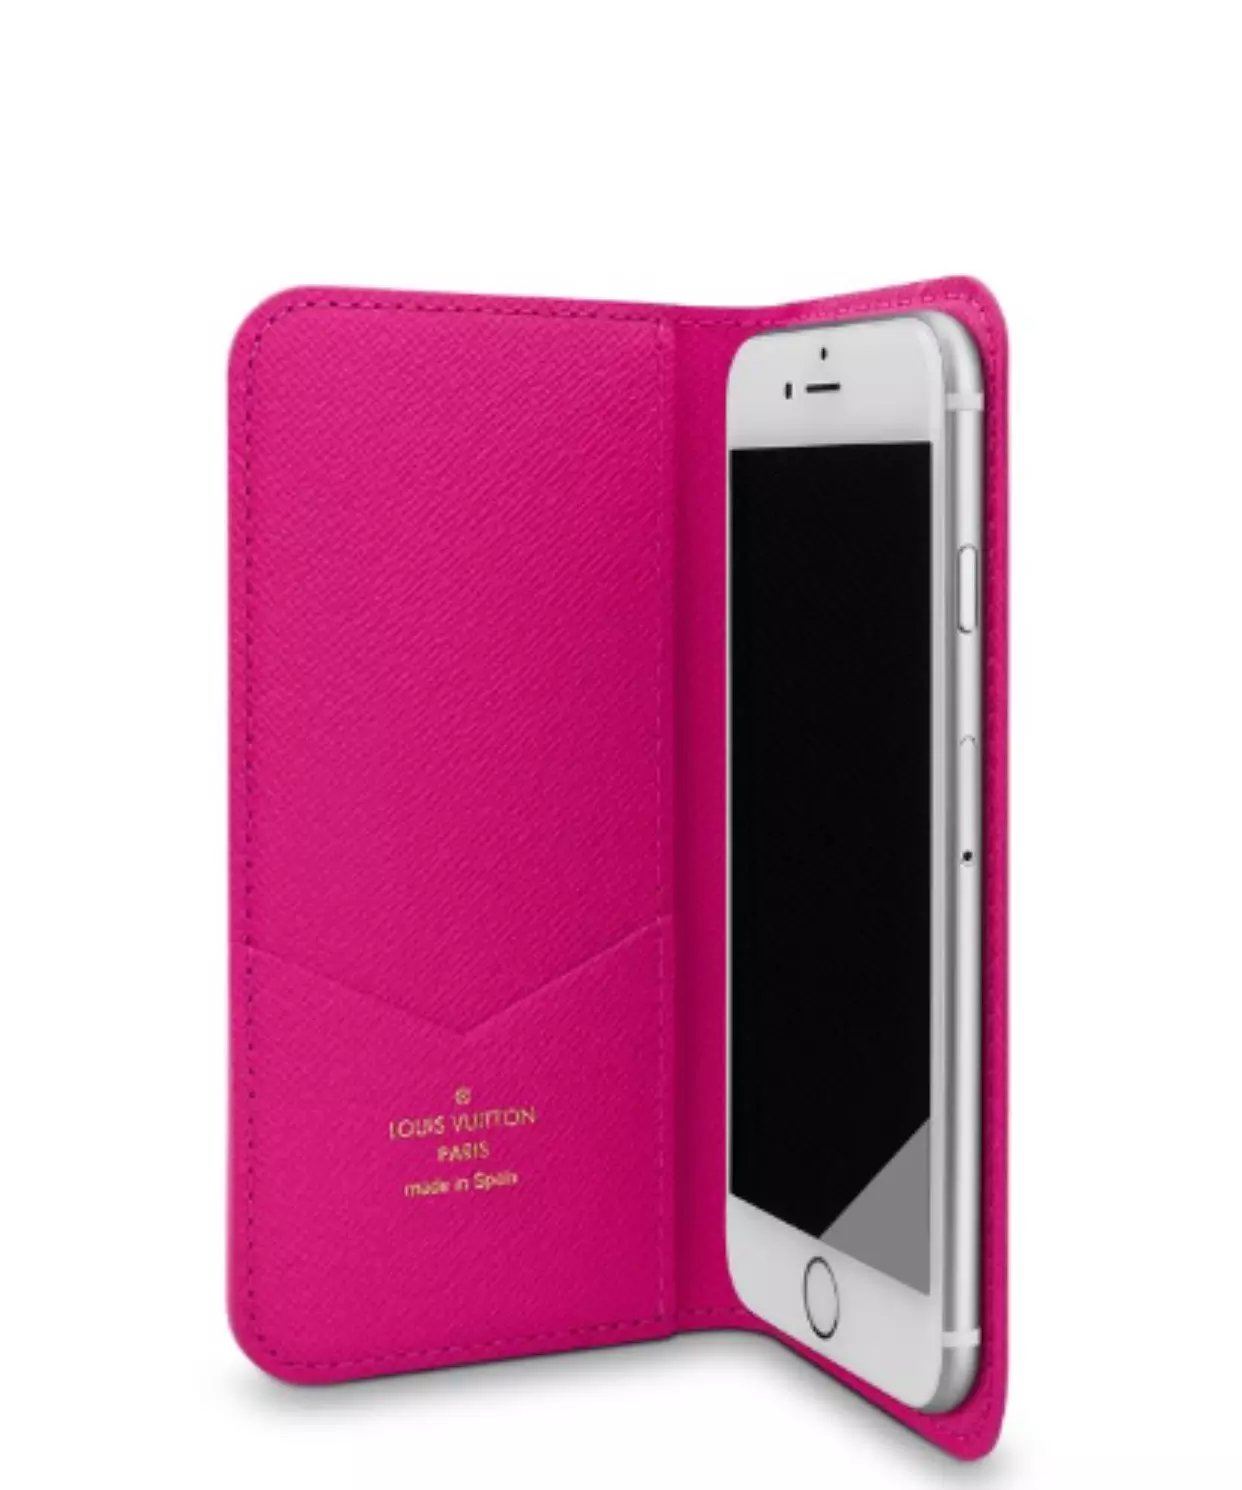 iphone schutzhülle iphone case foto Louis Vuitton iphone6 plus hülle apple iphone 6 preisvergleich iphone 6 Plus2 hülle iphone 6 Plus design hülle handyhülle s 3 mini iphone hülle mit foto bedrucken handytasche für iphone 6 Plus